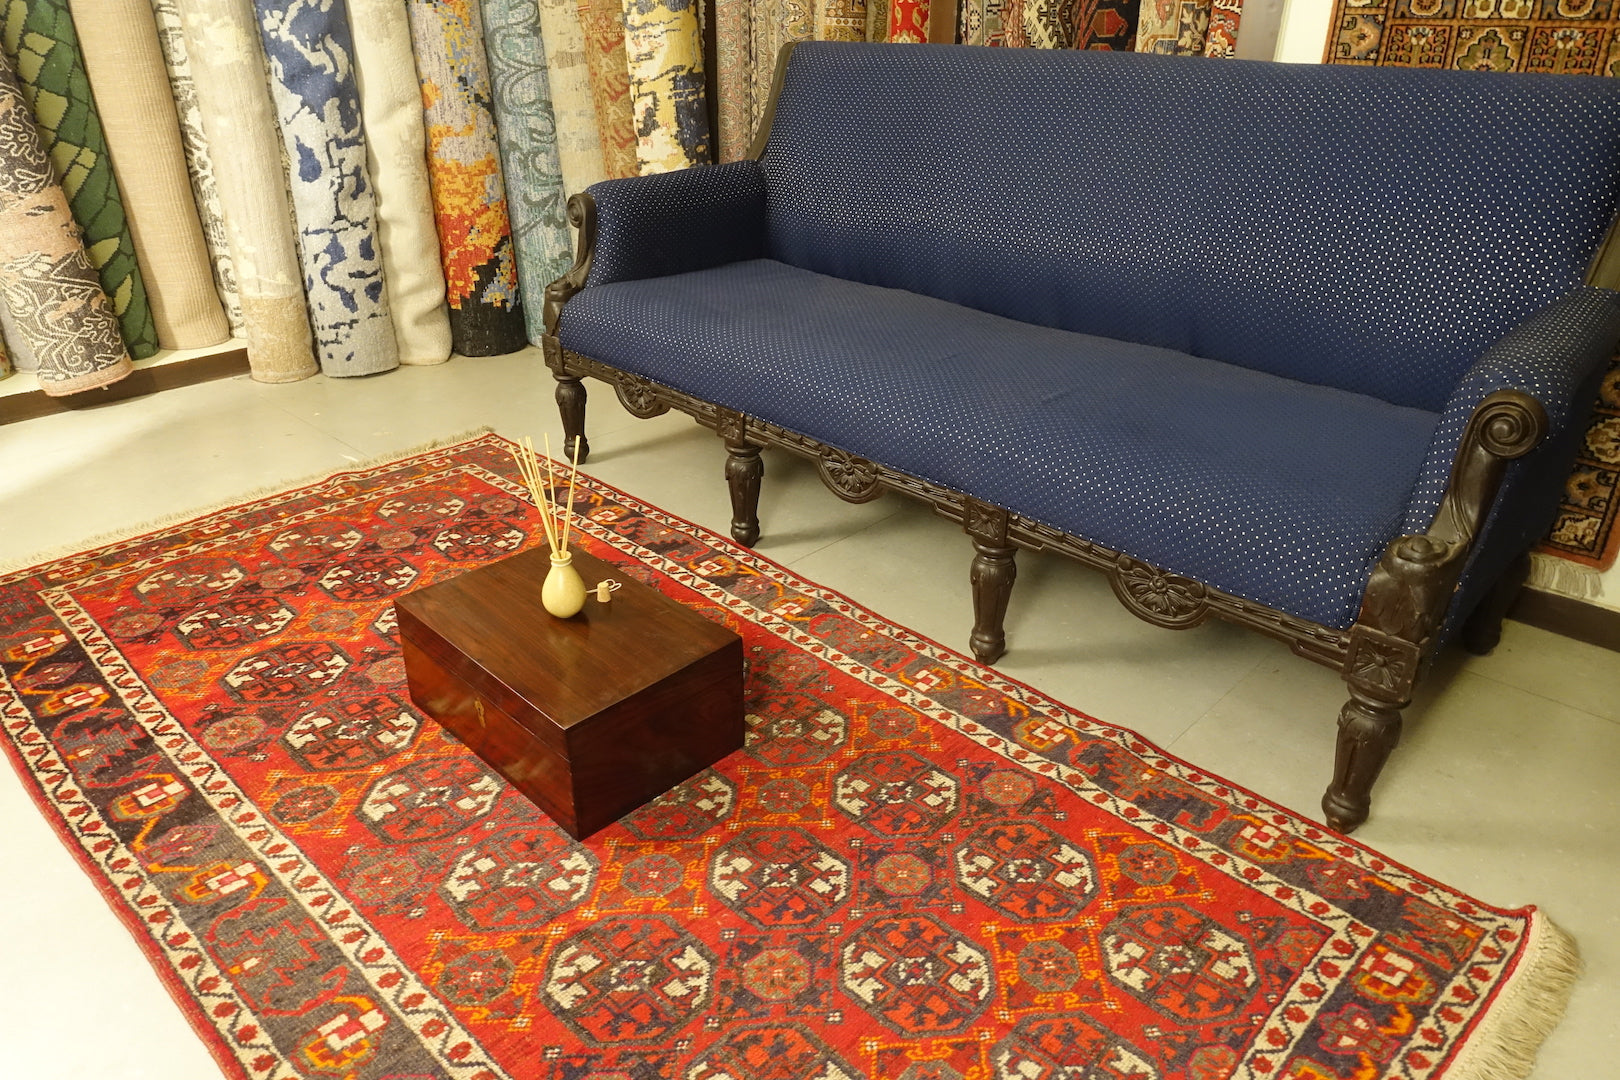 A 3.75 feet by 7.5 feet antique turkoman rug, the colours used on the rug are deep red,blue,yellow,pink and rust.